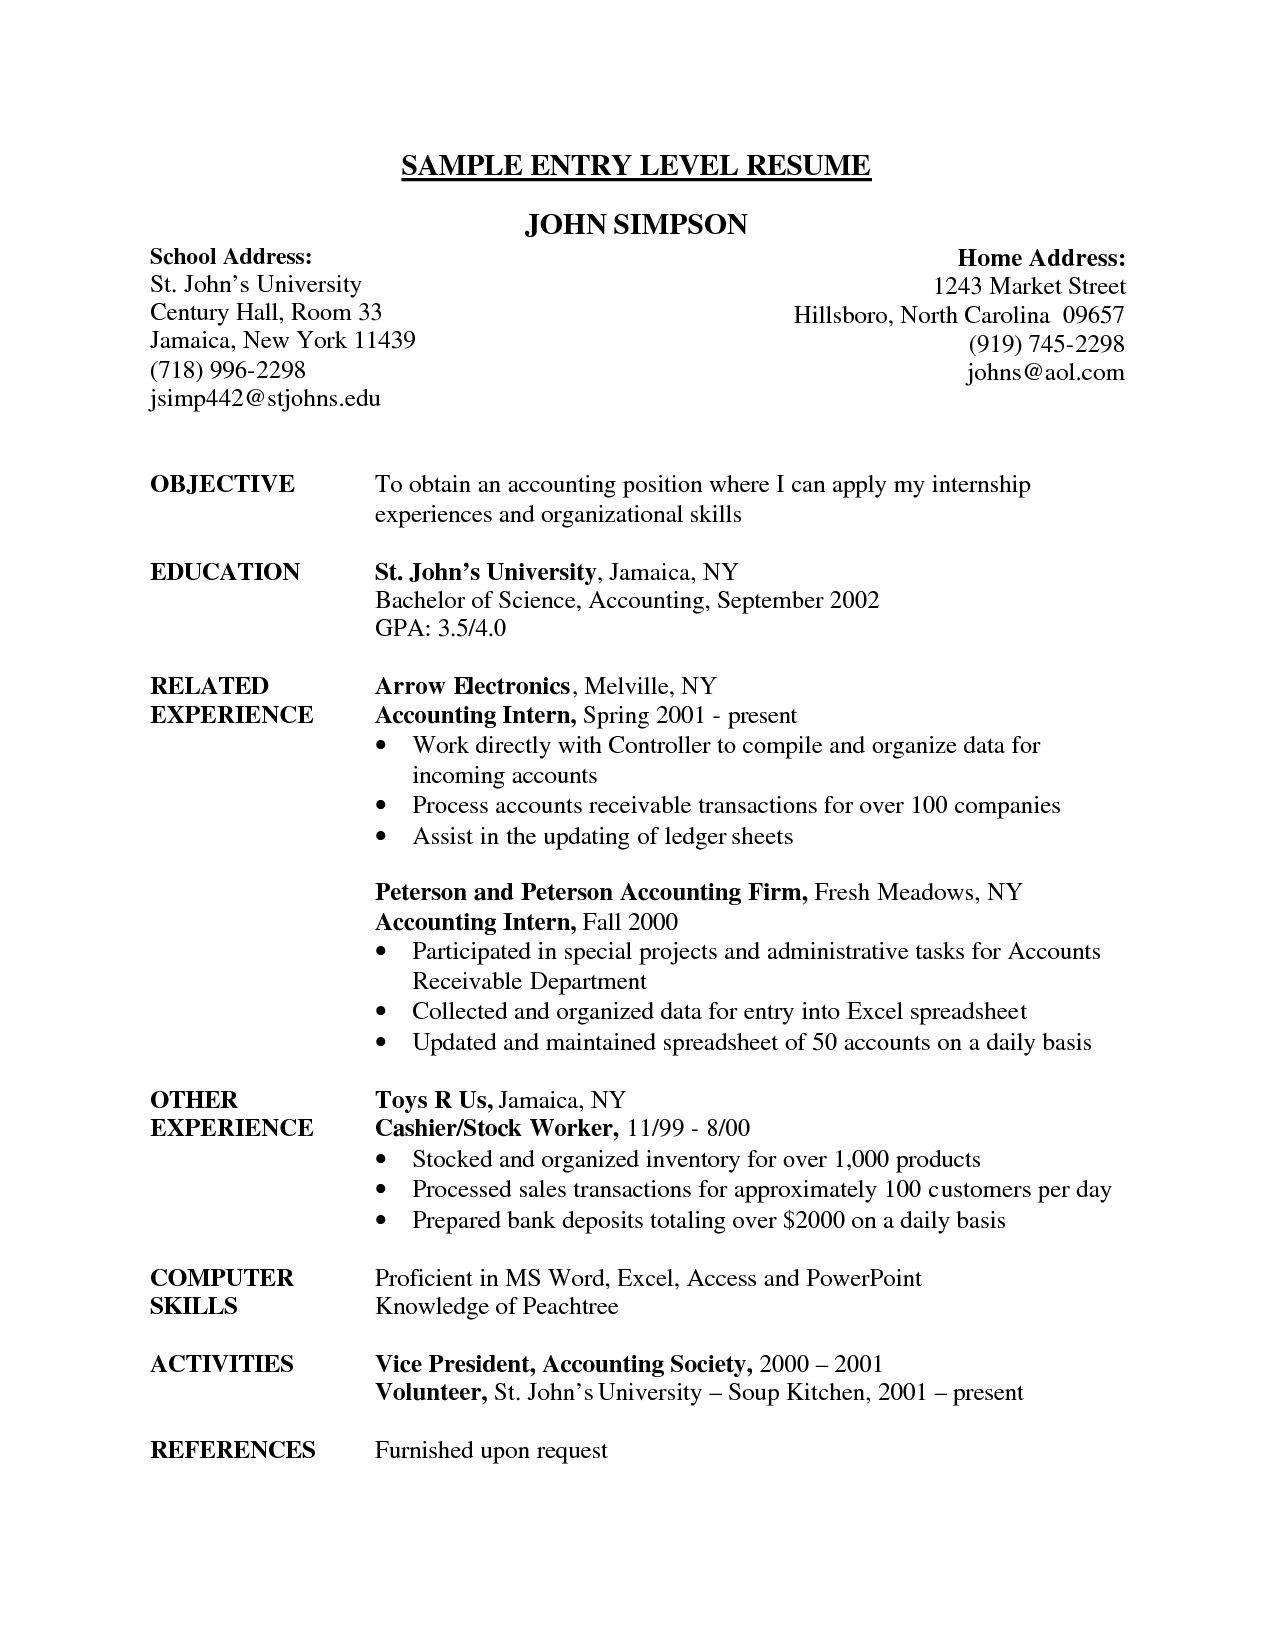 Summary For Resume Example Entry Level Resume Example Entry Level Job Resume Examples